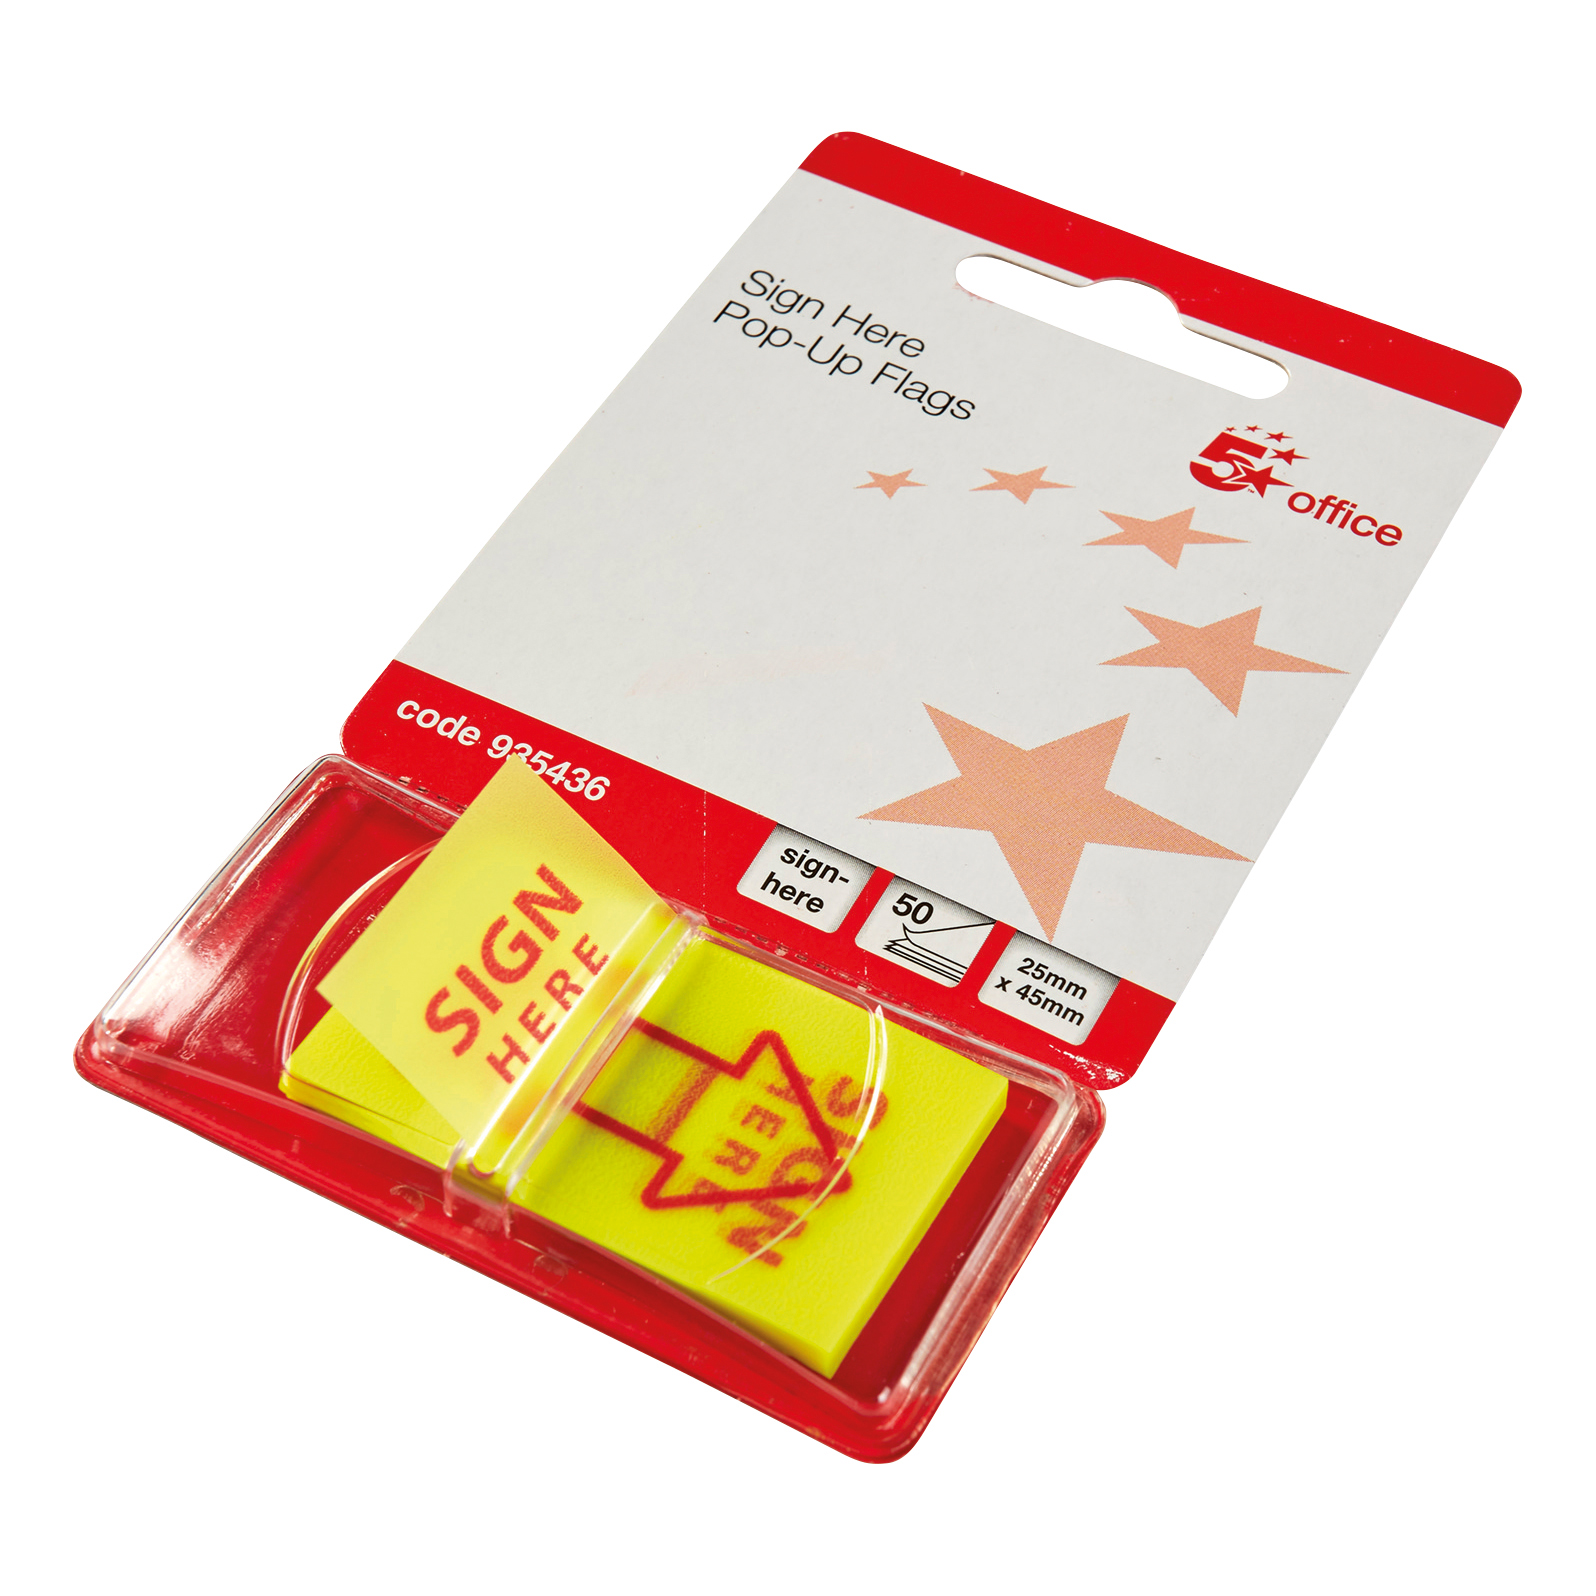 5 Star Office Sign Here Index Flags Tab With Red Arrow 46x25mm 10 Wallets of 50 Flags 500 Flags